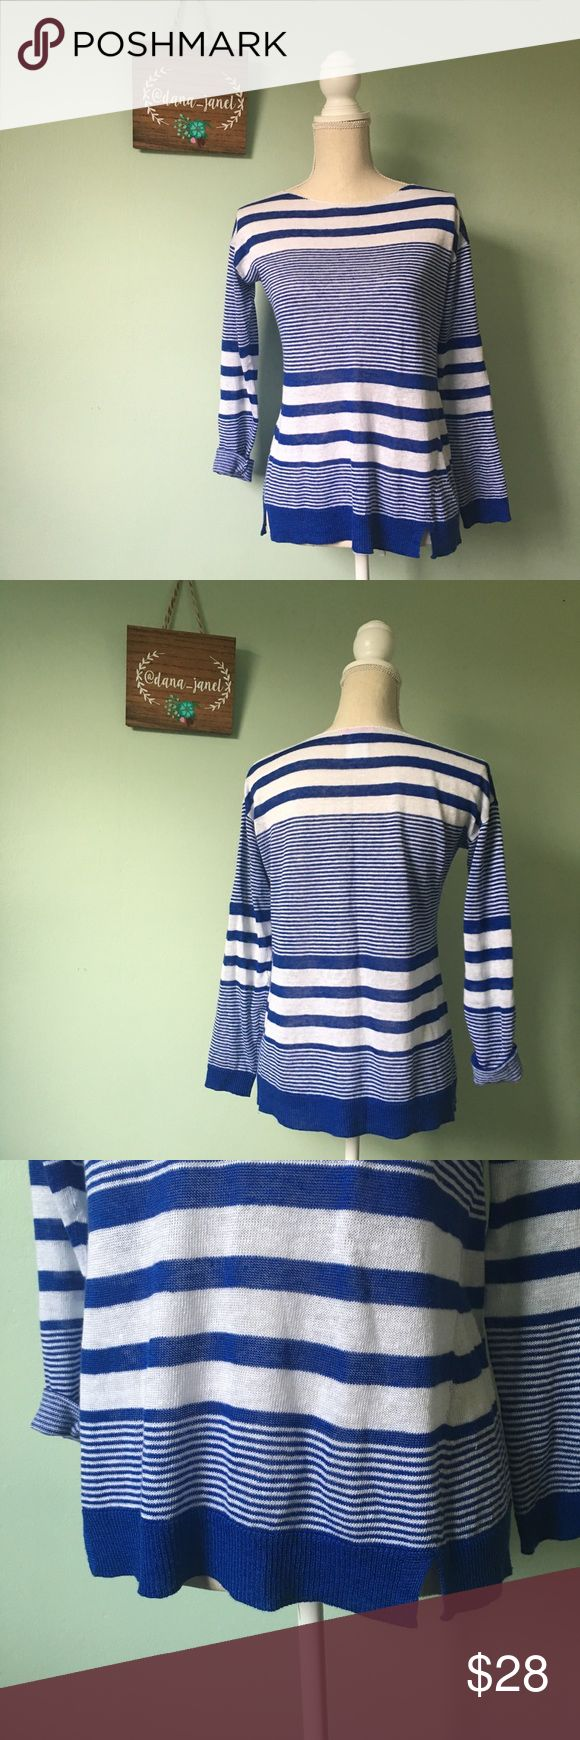 "Lilly Pulitzer Camilla Linen Sweater Blue XXS Beautiful animated striped sweater, in excellent condition expect for a minor makeup stain at the collar as pictured.  Worn once.  Please note the asymmetrical slit at the bottom of the shirt- adds to its character! I have the tags that I will send along.    Bust: 19"" pit to pit Length: 24"" Material: 100% Linen Brand: Lilly Pulitzer  If you have any questions, I'll gladly answer!  Dog friendly home 🐶🐶 